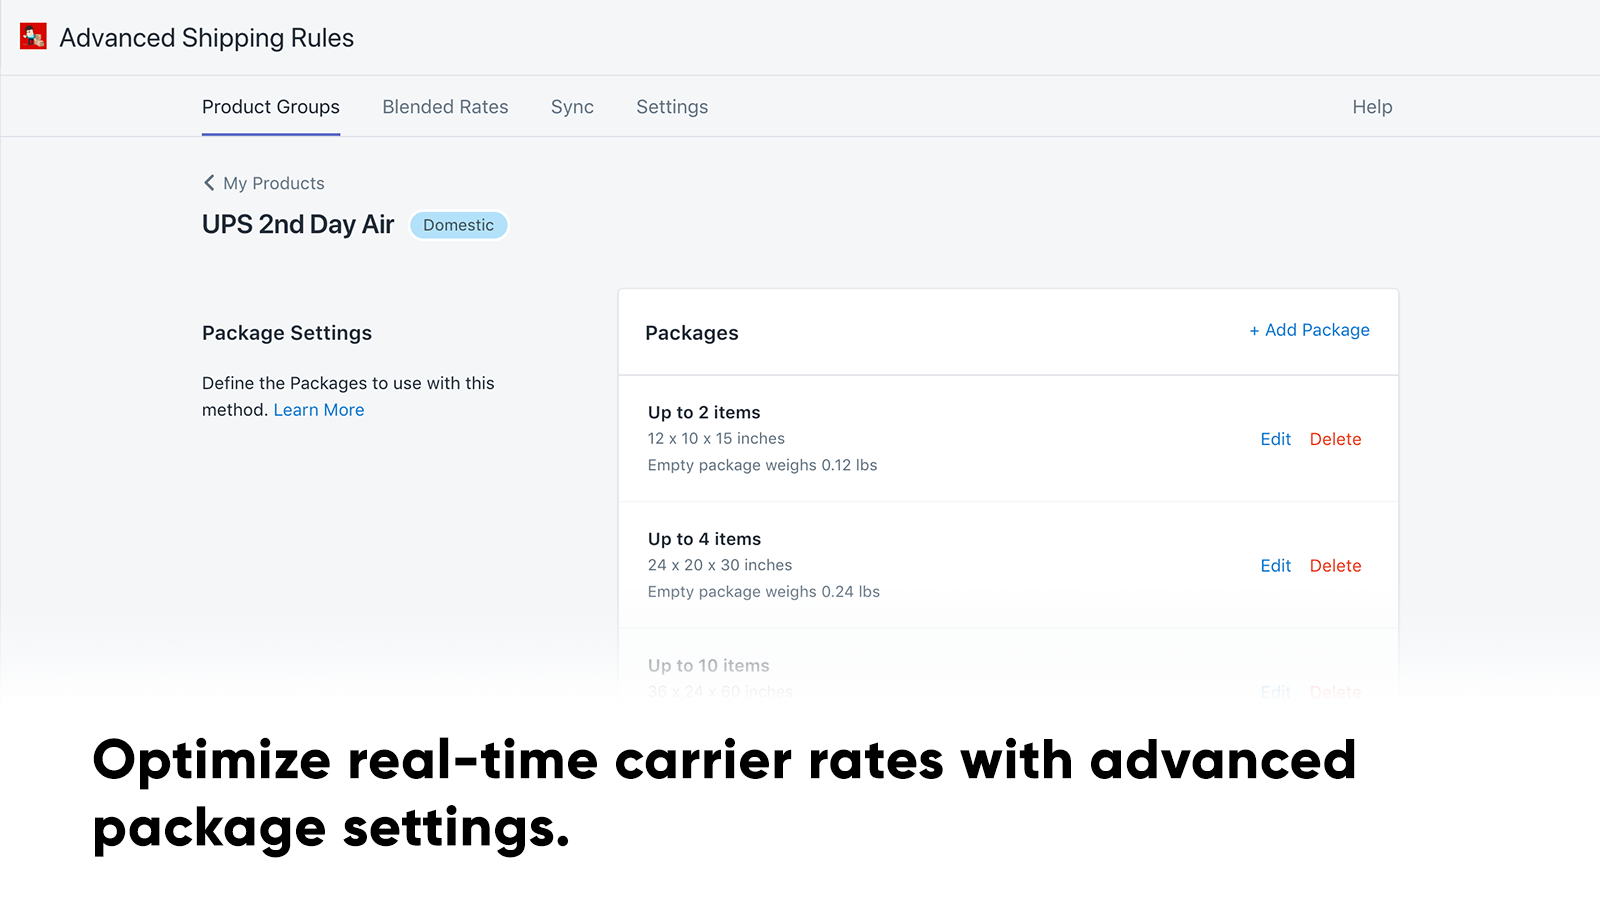 Optimize real-time carrier rates with package settings